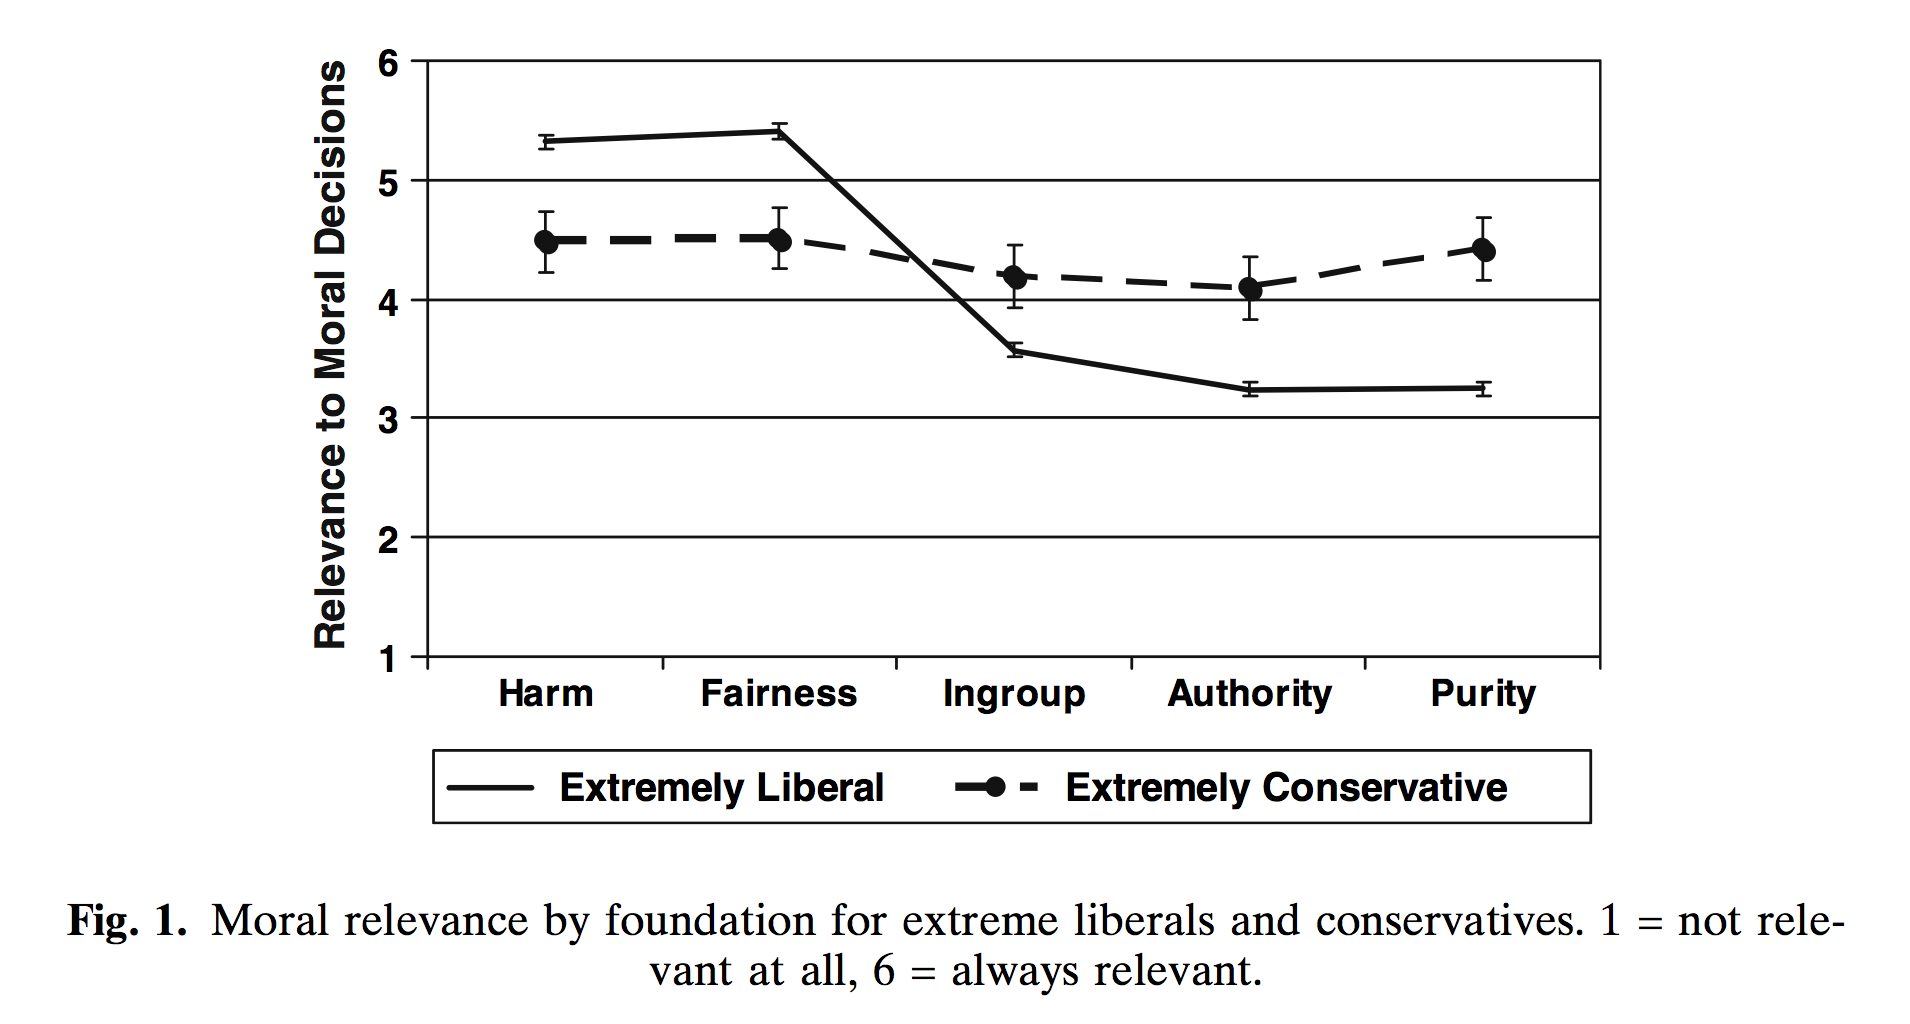 Moral virtues according to Haidt